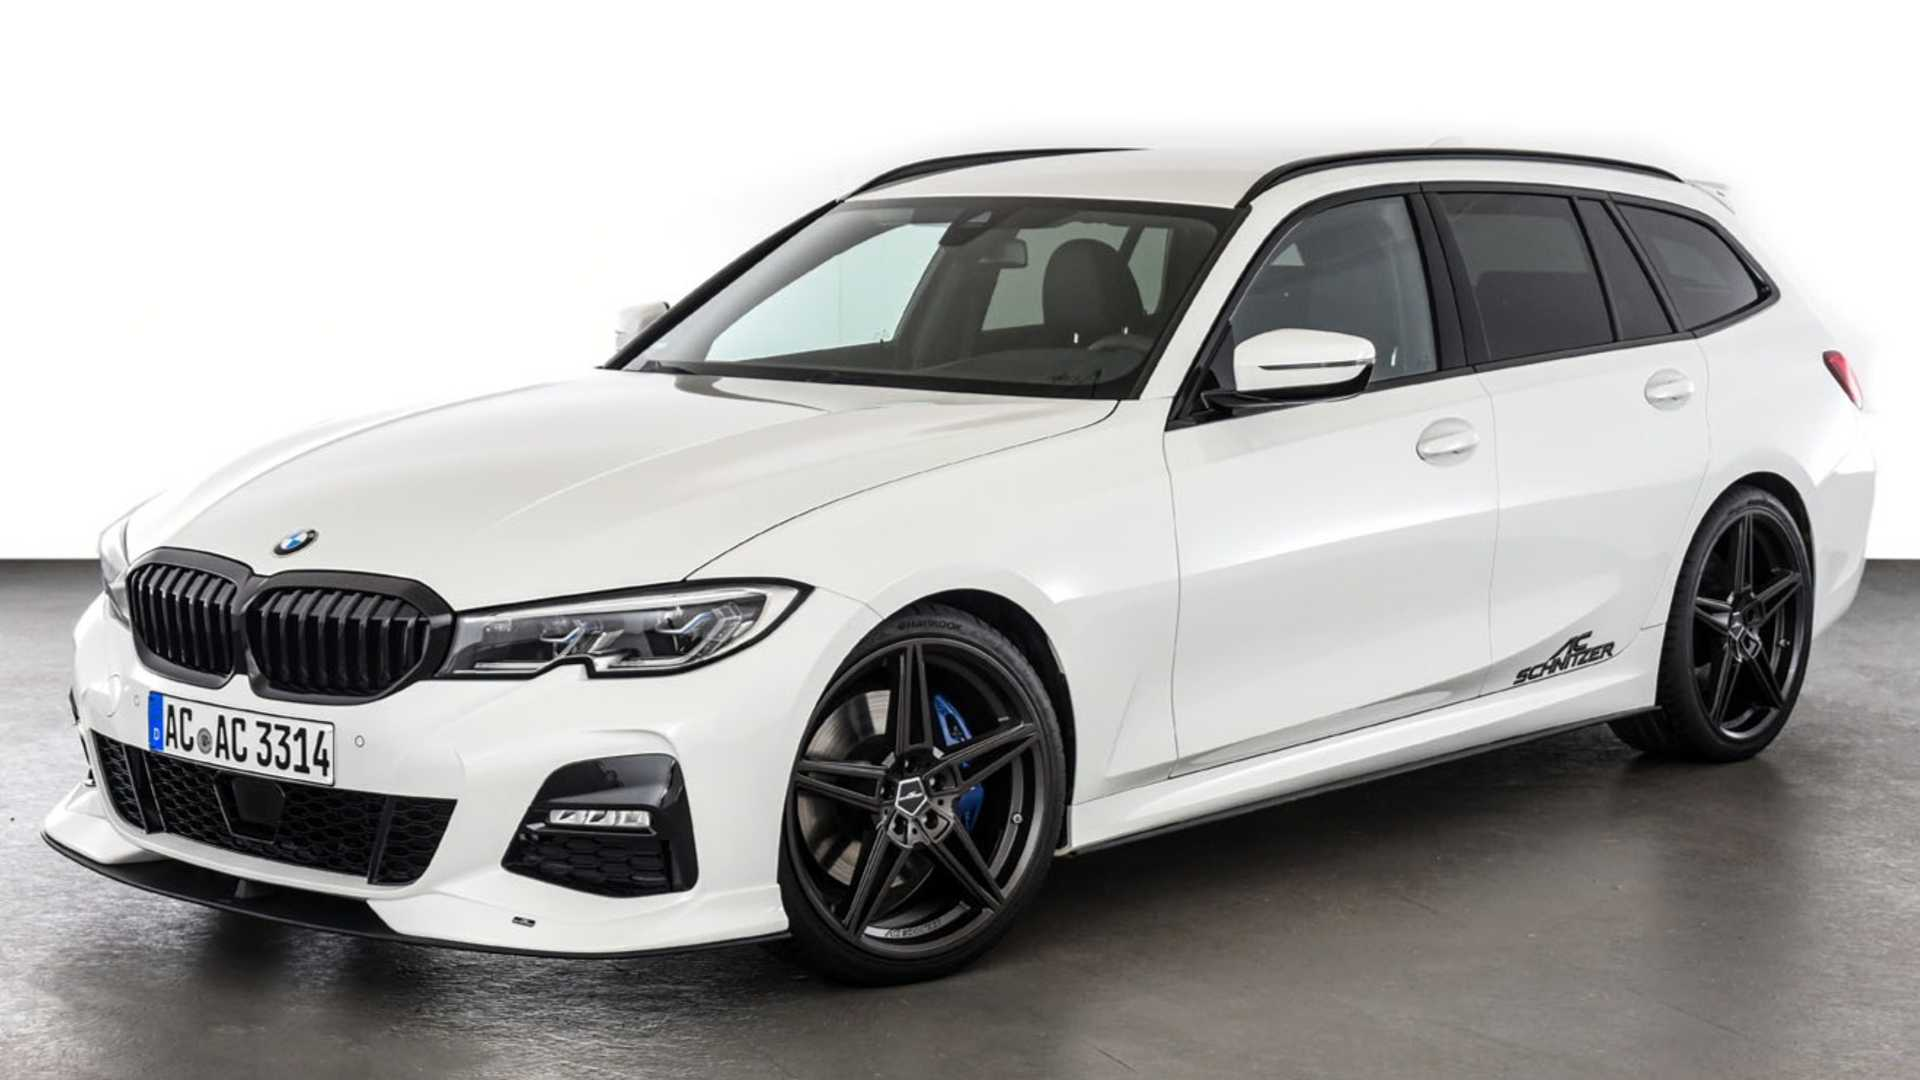 2020 Bmw 3 Series Touring By Ac Schnitzer Refines The Sports Wagon